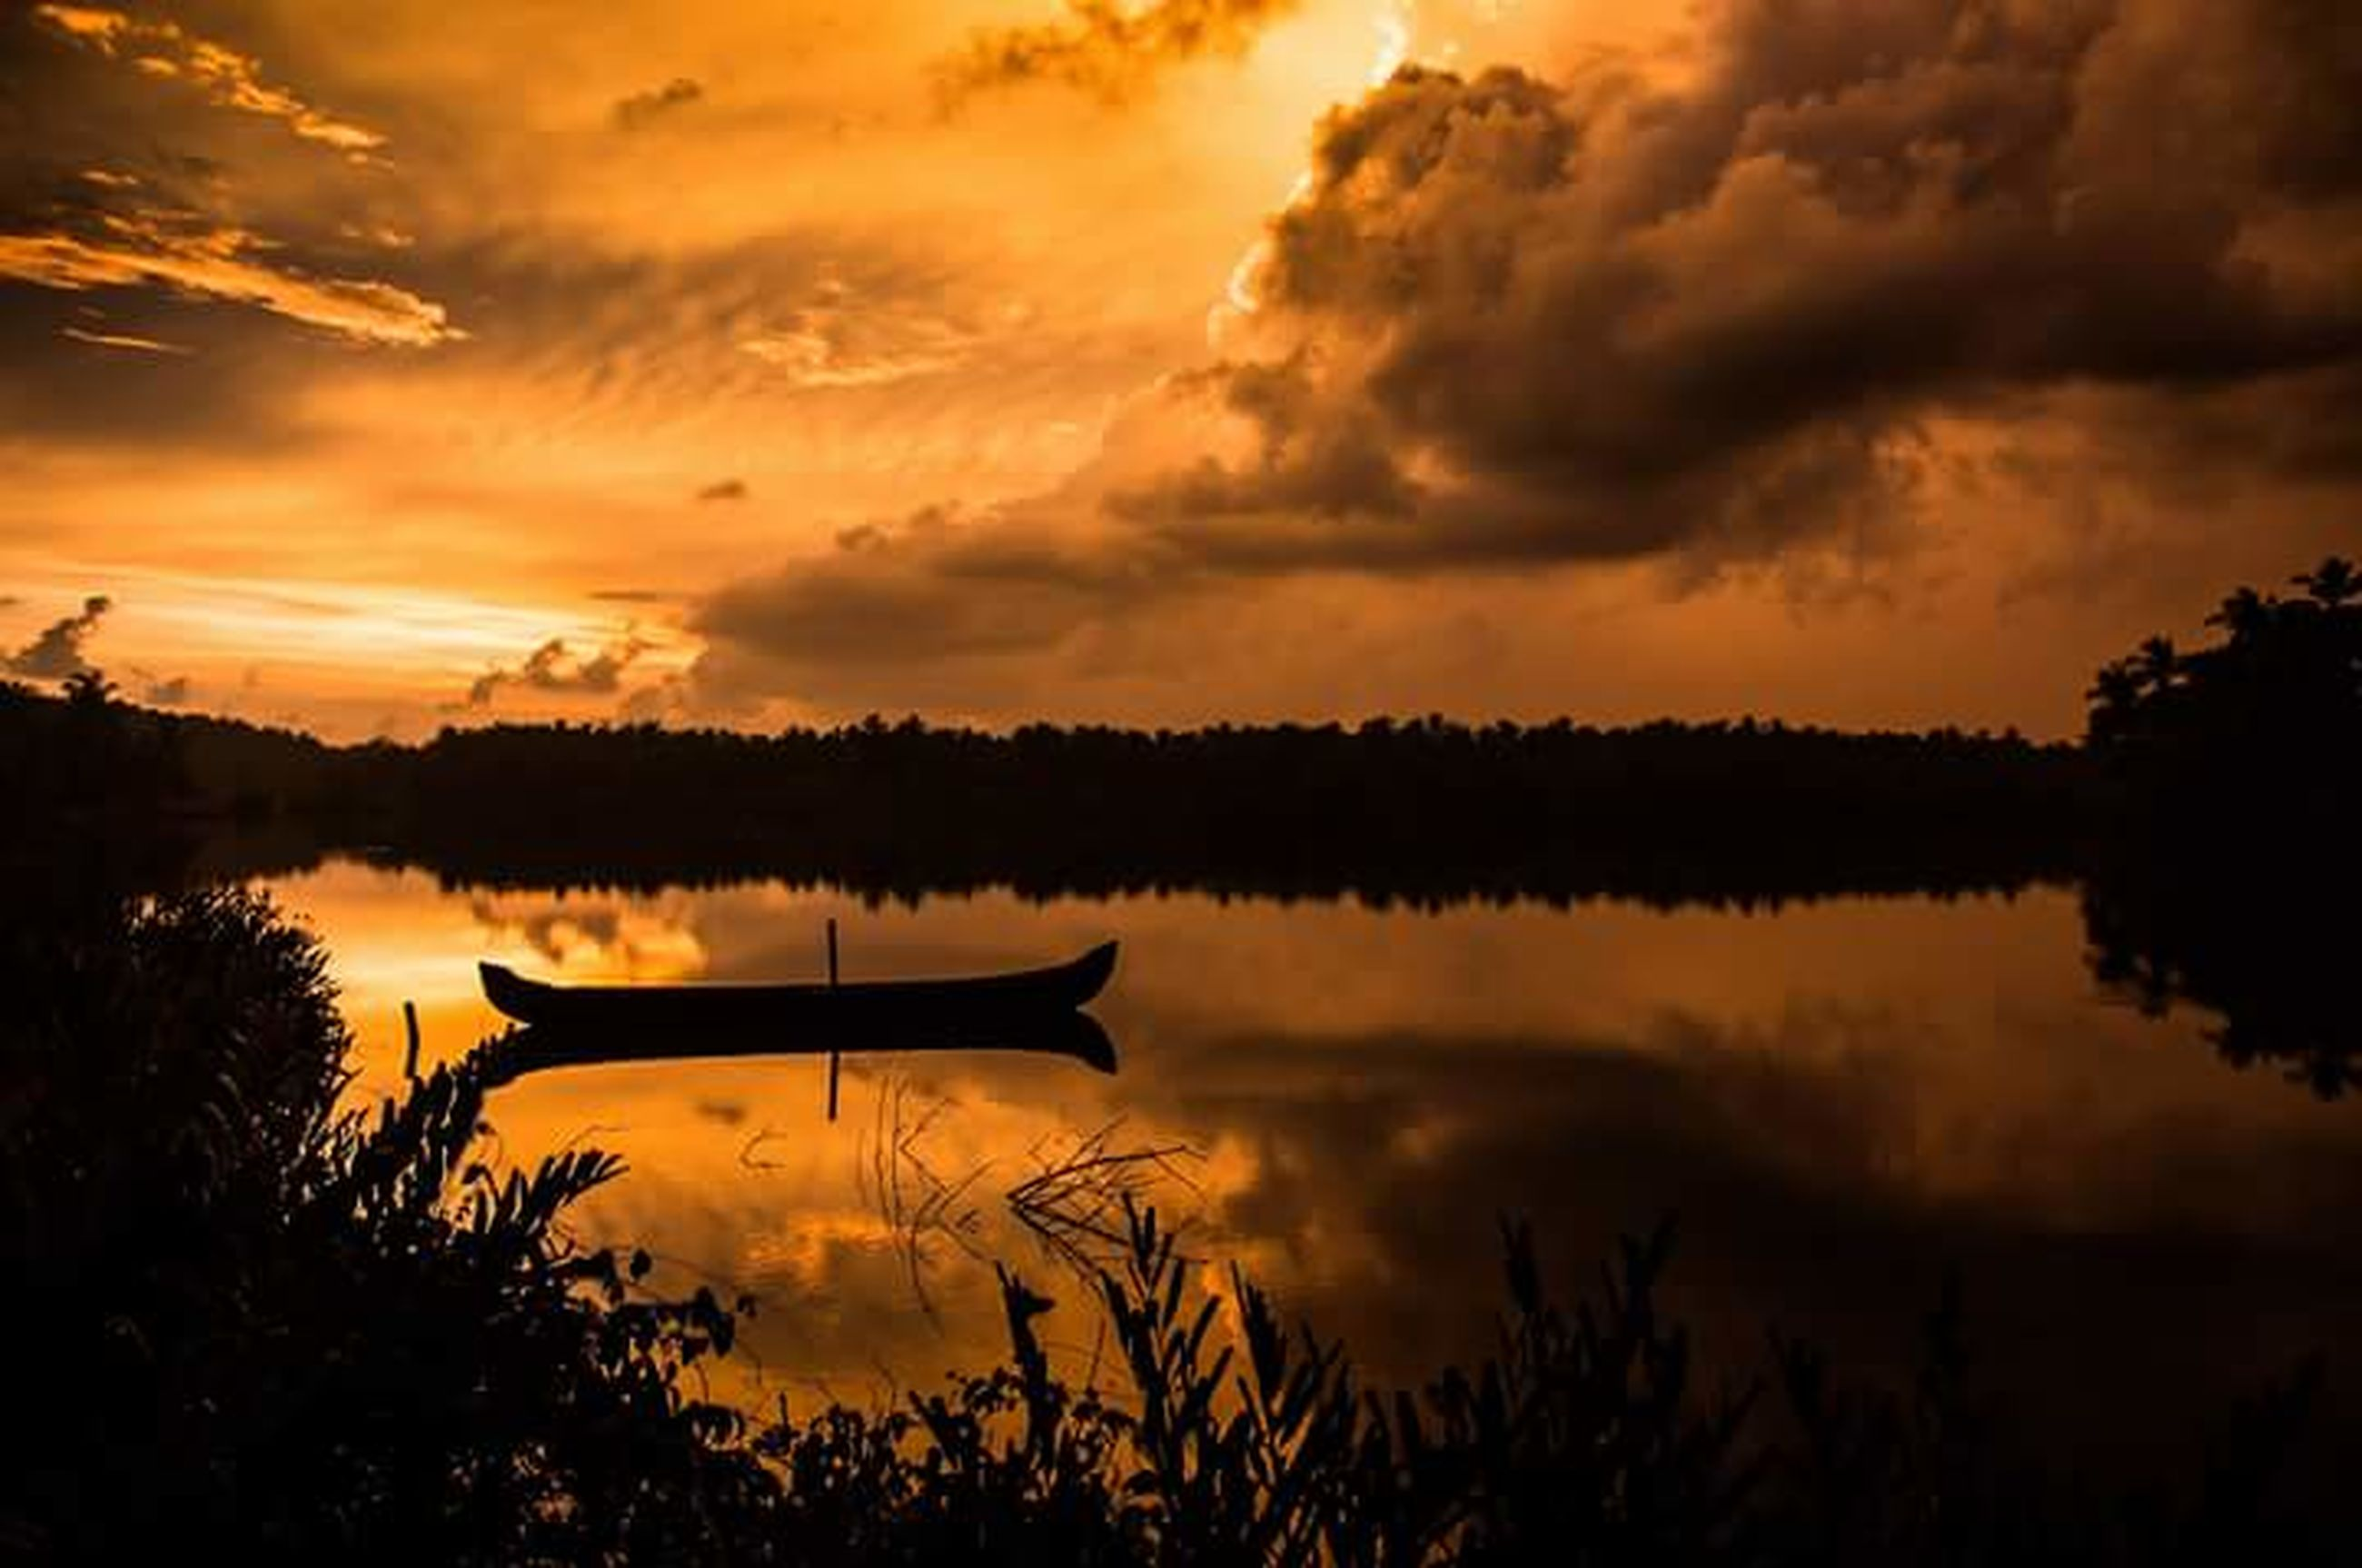 sunset, water, sky, reflection, lake, tranquility, cloud - sky, tranquil scene, silhouette, scenics, beauty in nature, orange color, nautical vessel, cloud, boat, nature, idyllic, cloudy, tree, waterfront